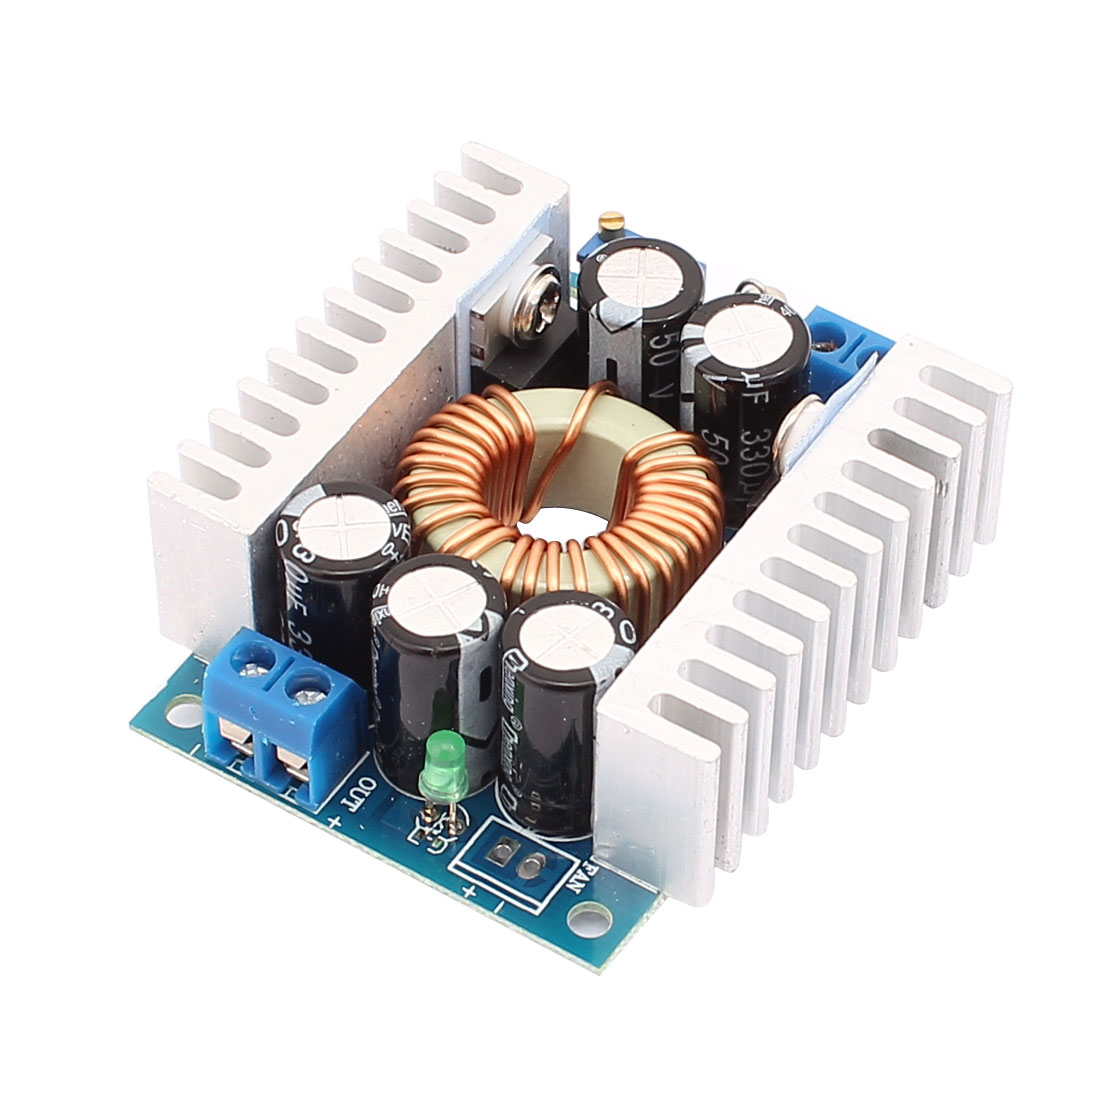 12A High-power Power Supply Module Board Car Kit 5cm x 6cm x 2cm